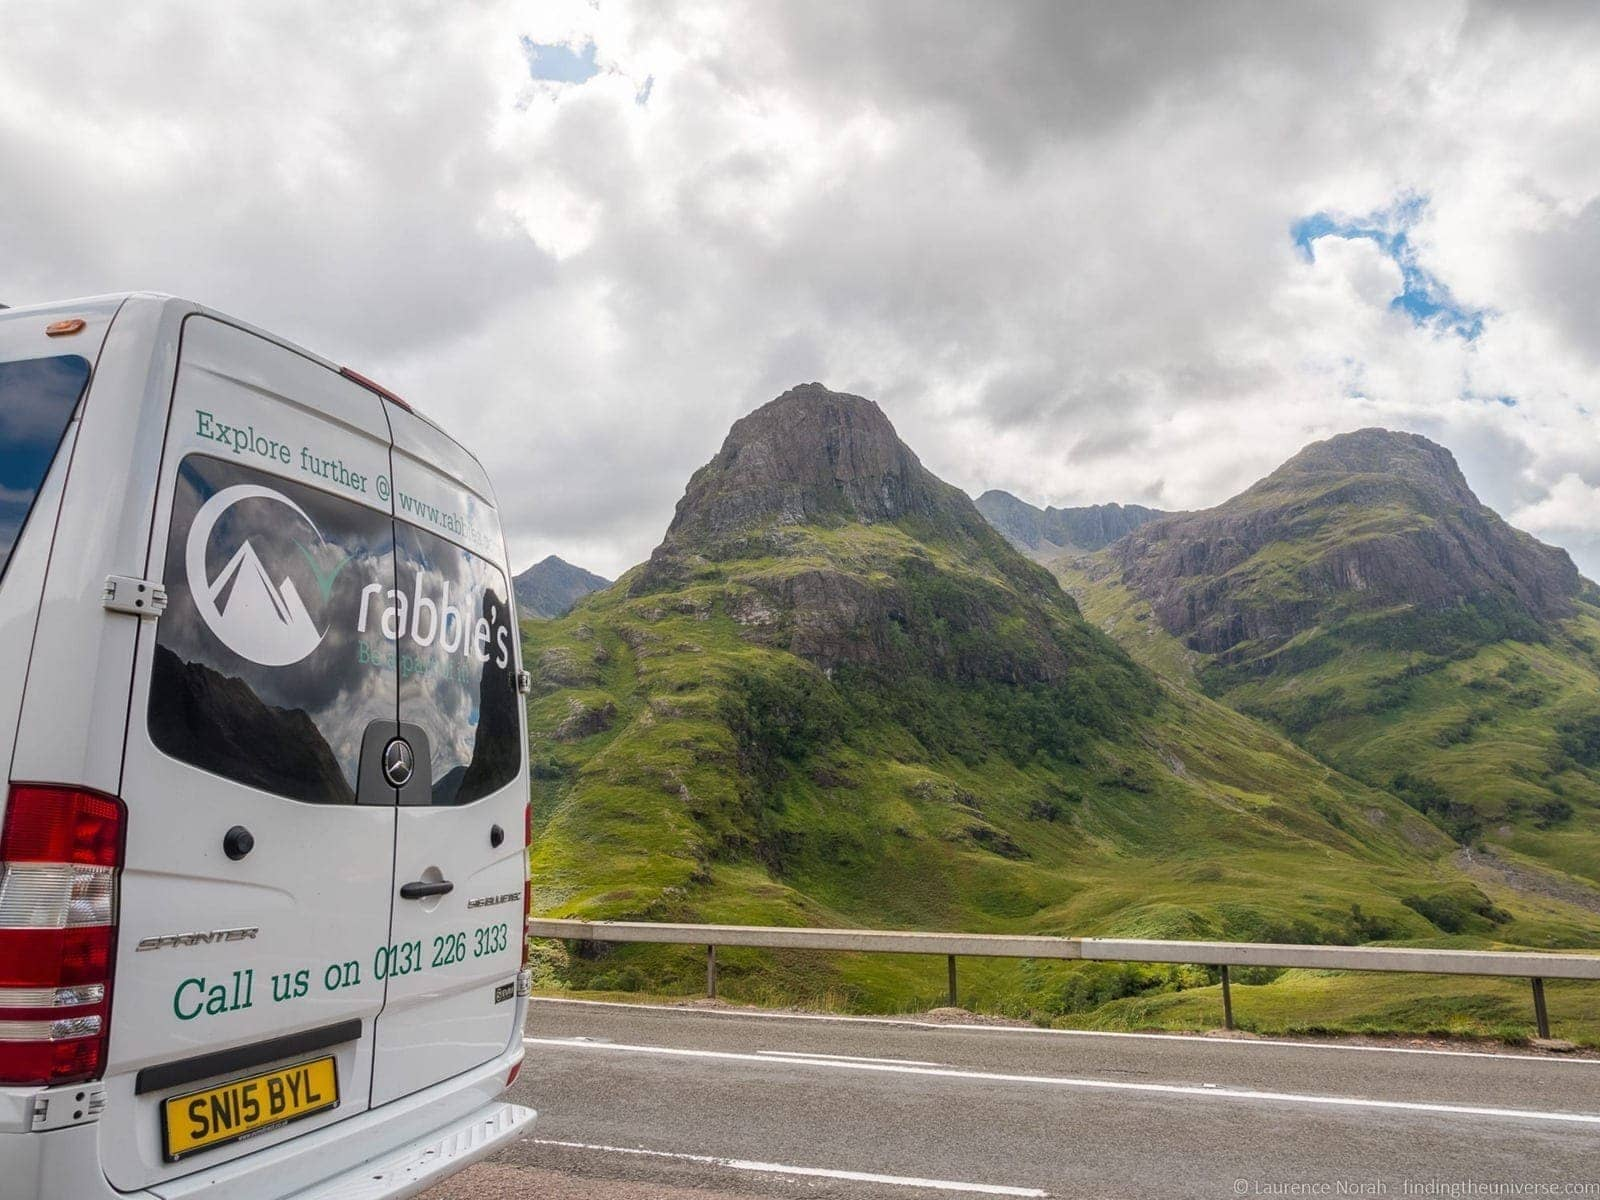 Rabbies bus two sisters glencoe